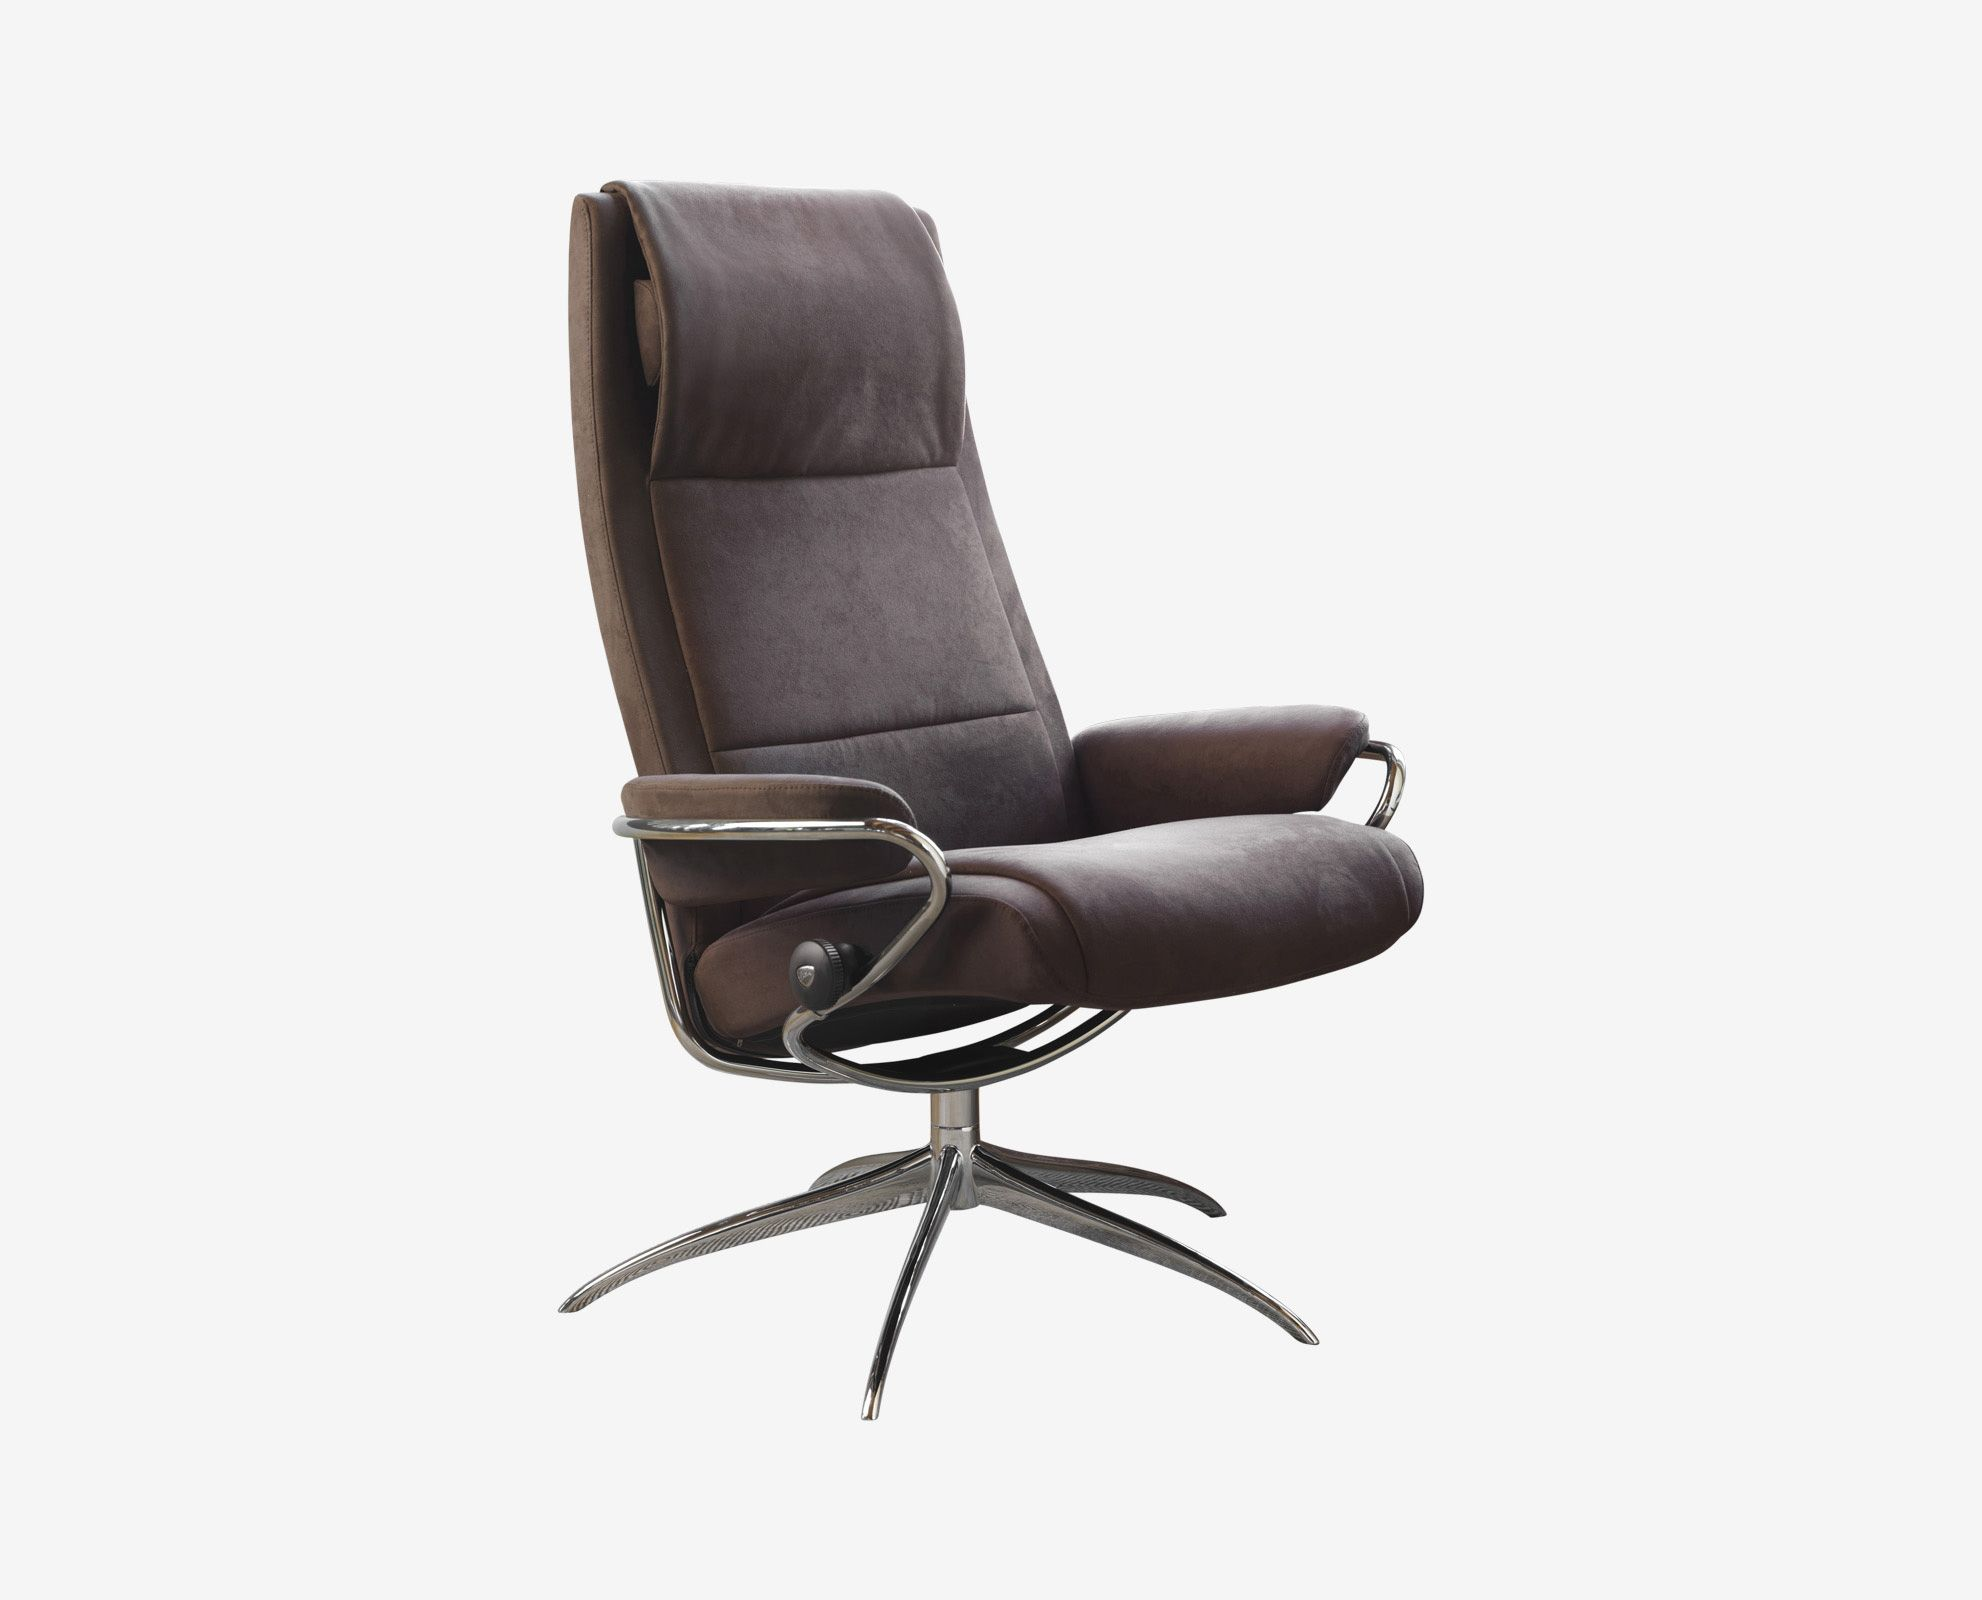 Scandinavian Designs The Paris Recliner Has An Elegant And Slender Shape Available With A 360 Degree Base And A Chro Recliner Scandinavian Design Star Shape